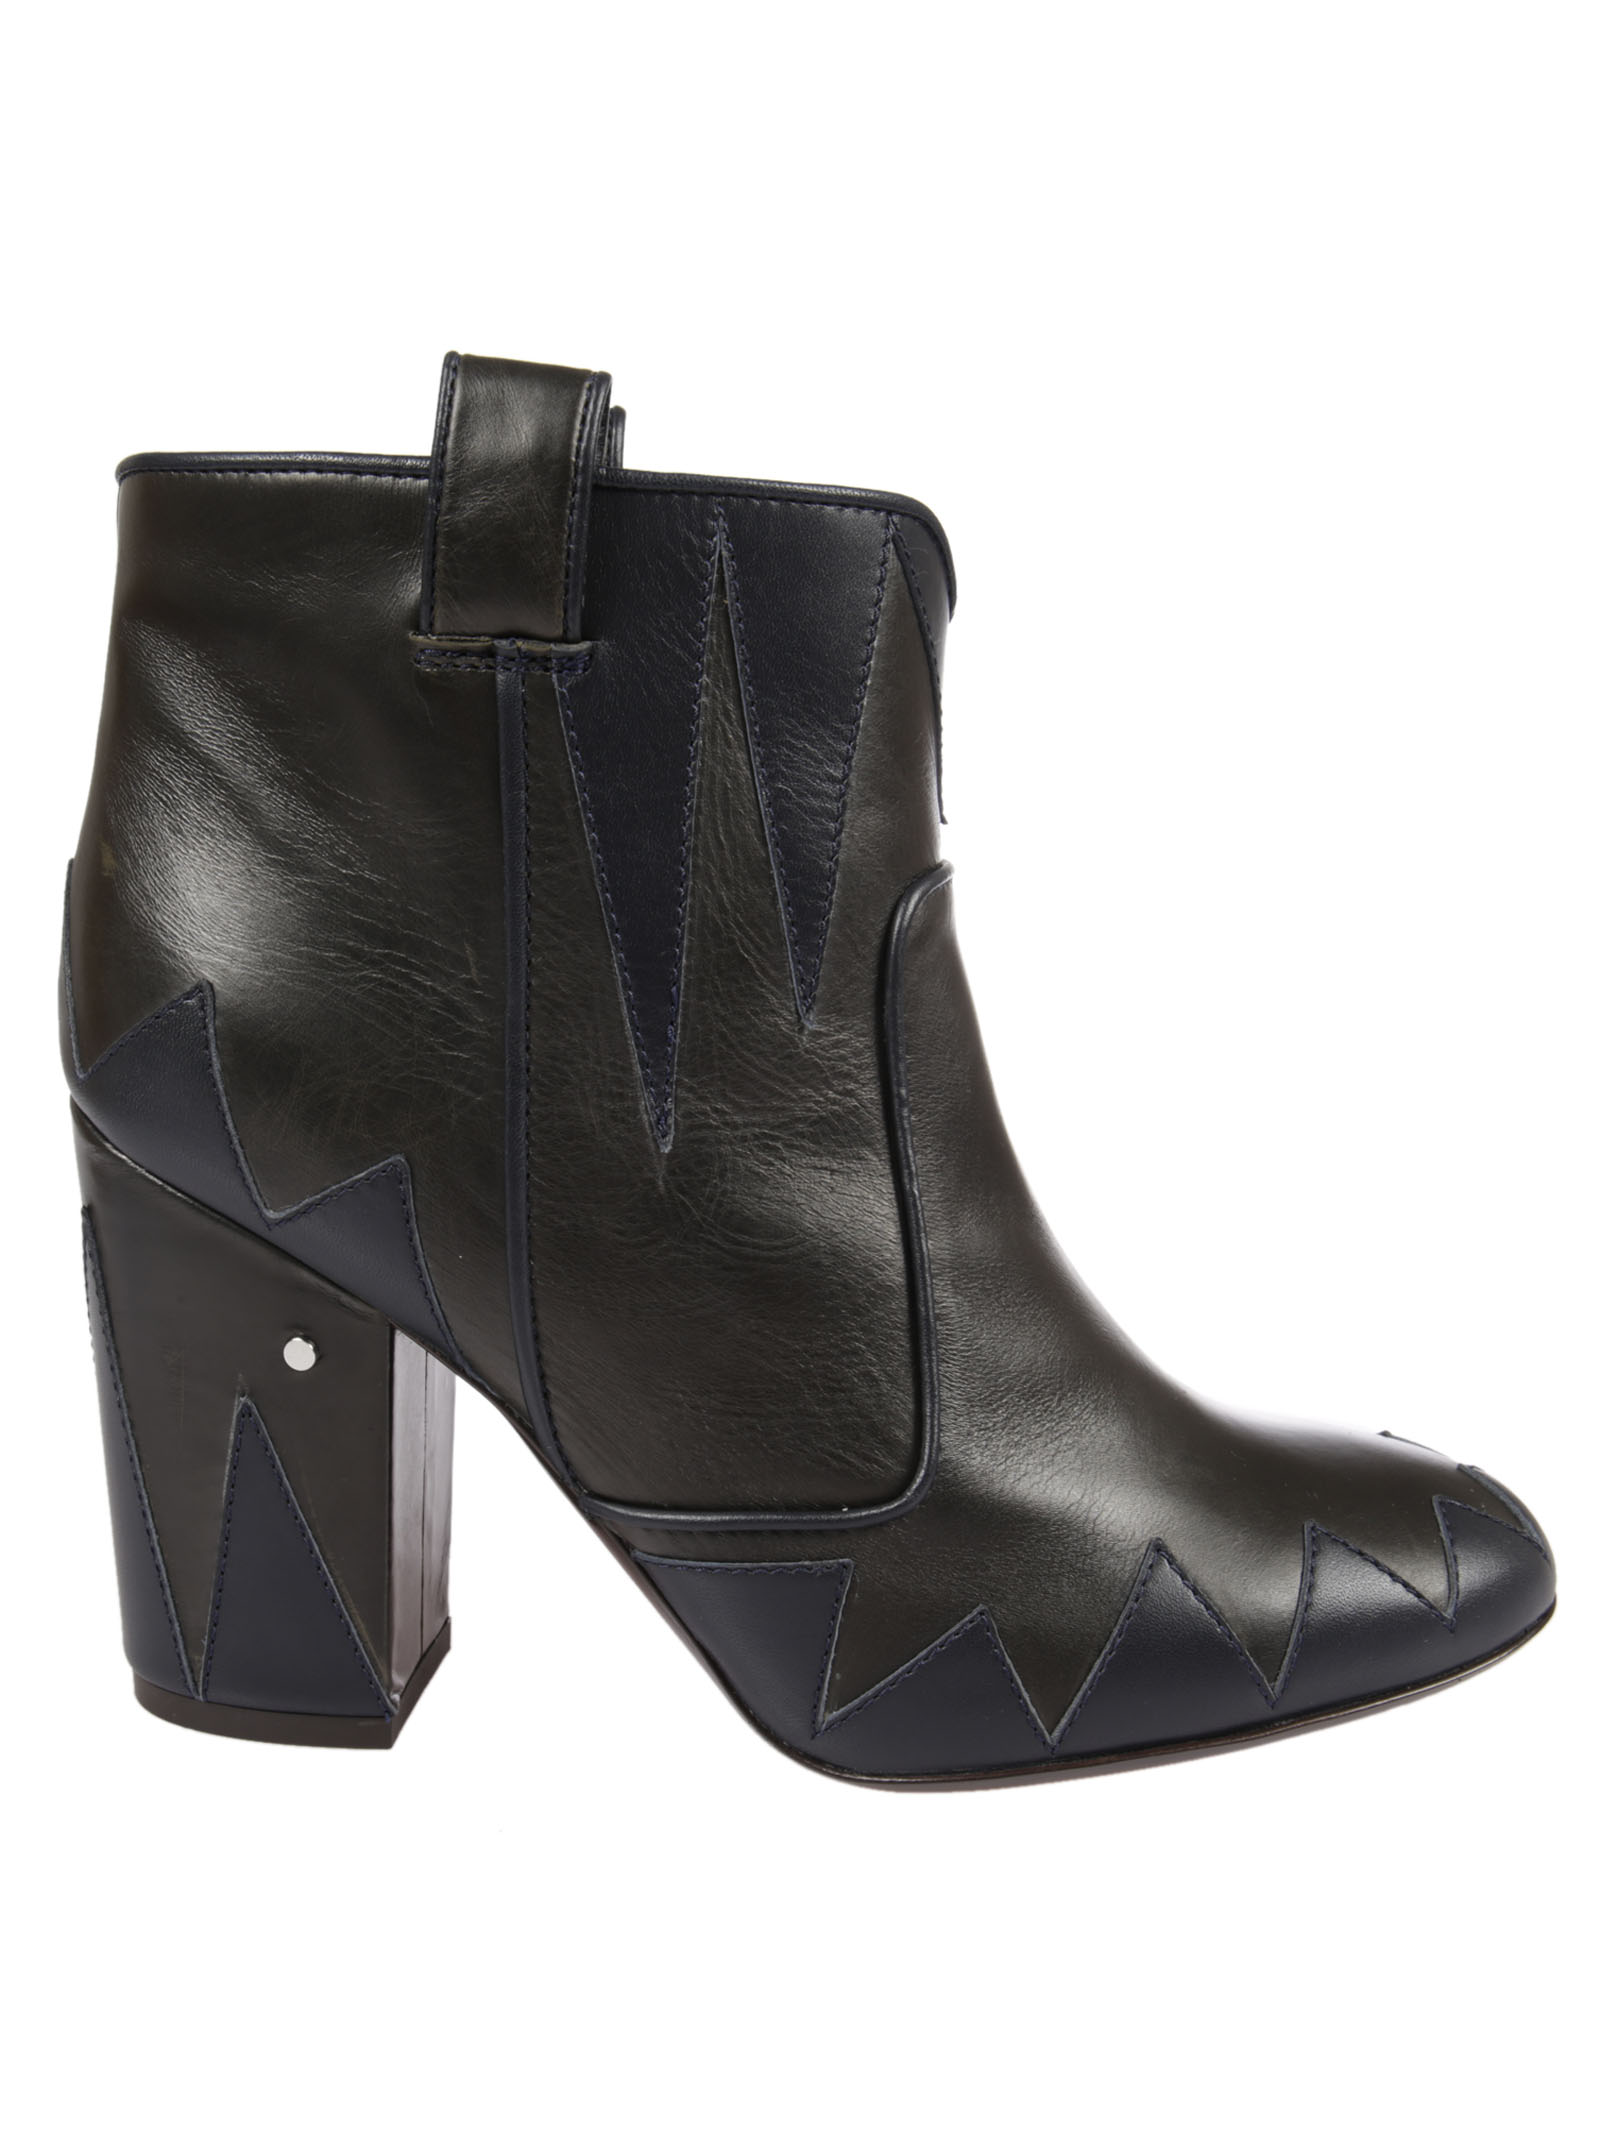 Laurence Dacade Laurence Dacade Pete Spike Ankle Boots